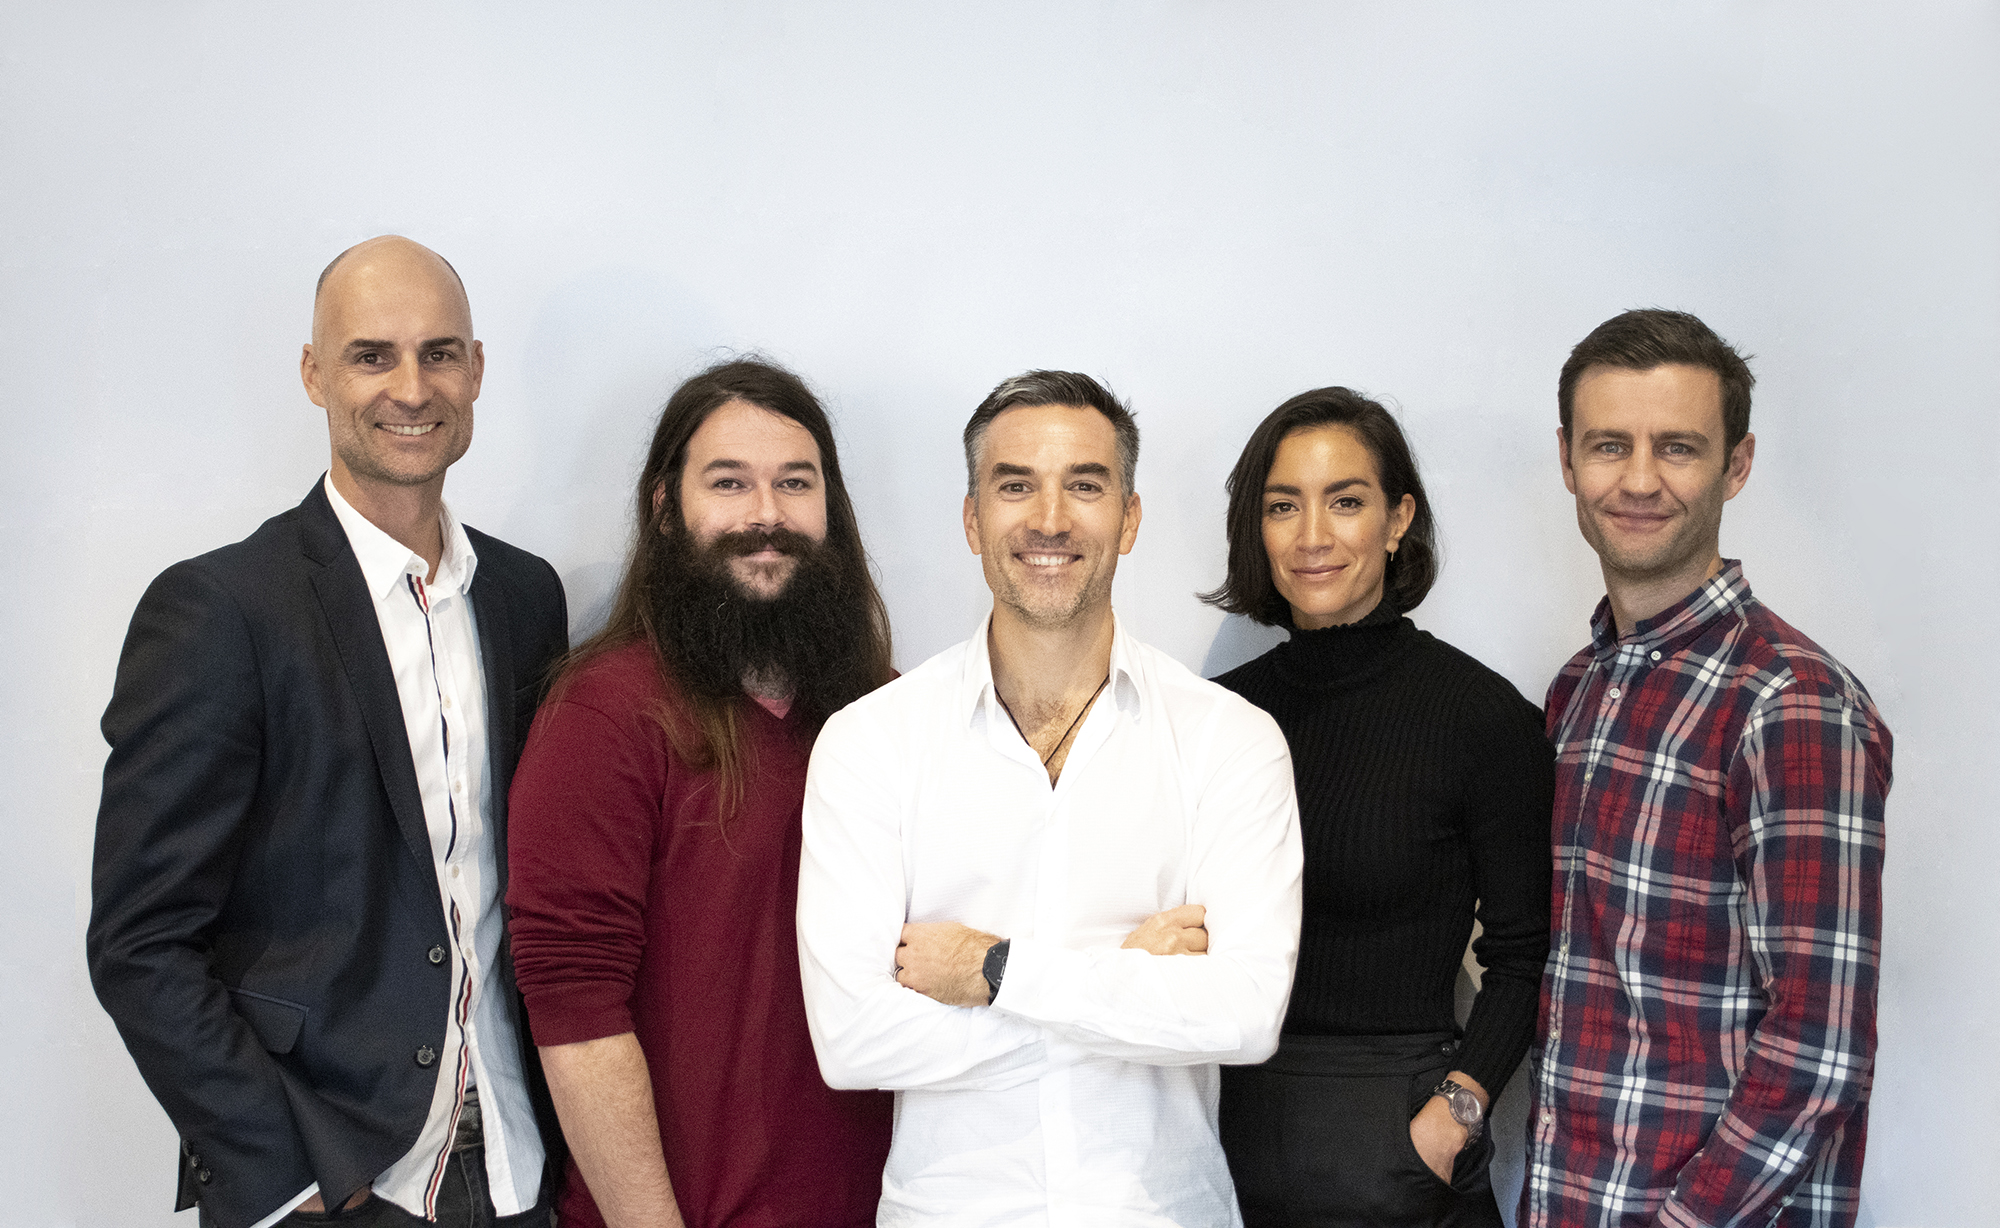 NZ digital agency Little Giant rebrands as Isobar; completes transition into global agency network